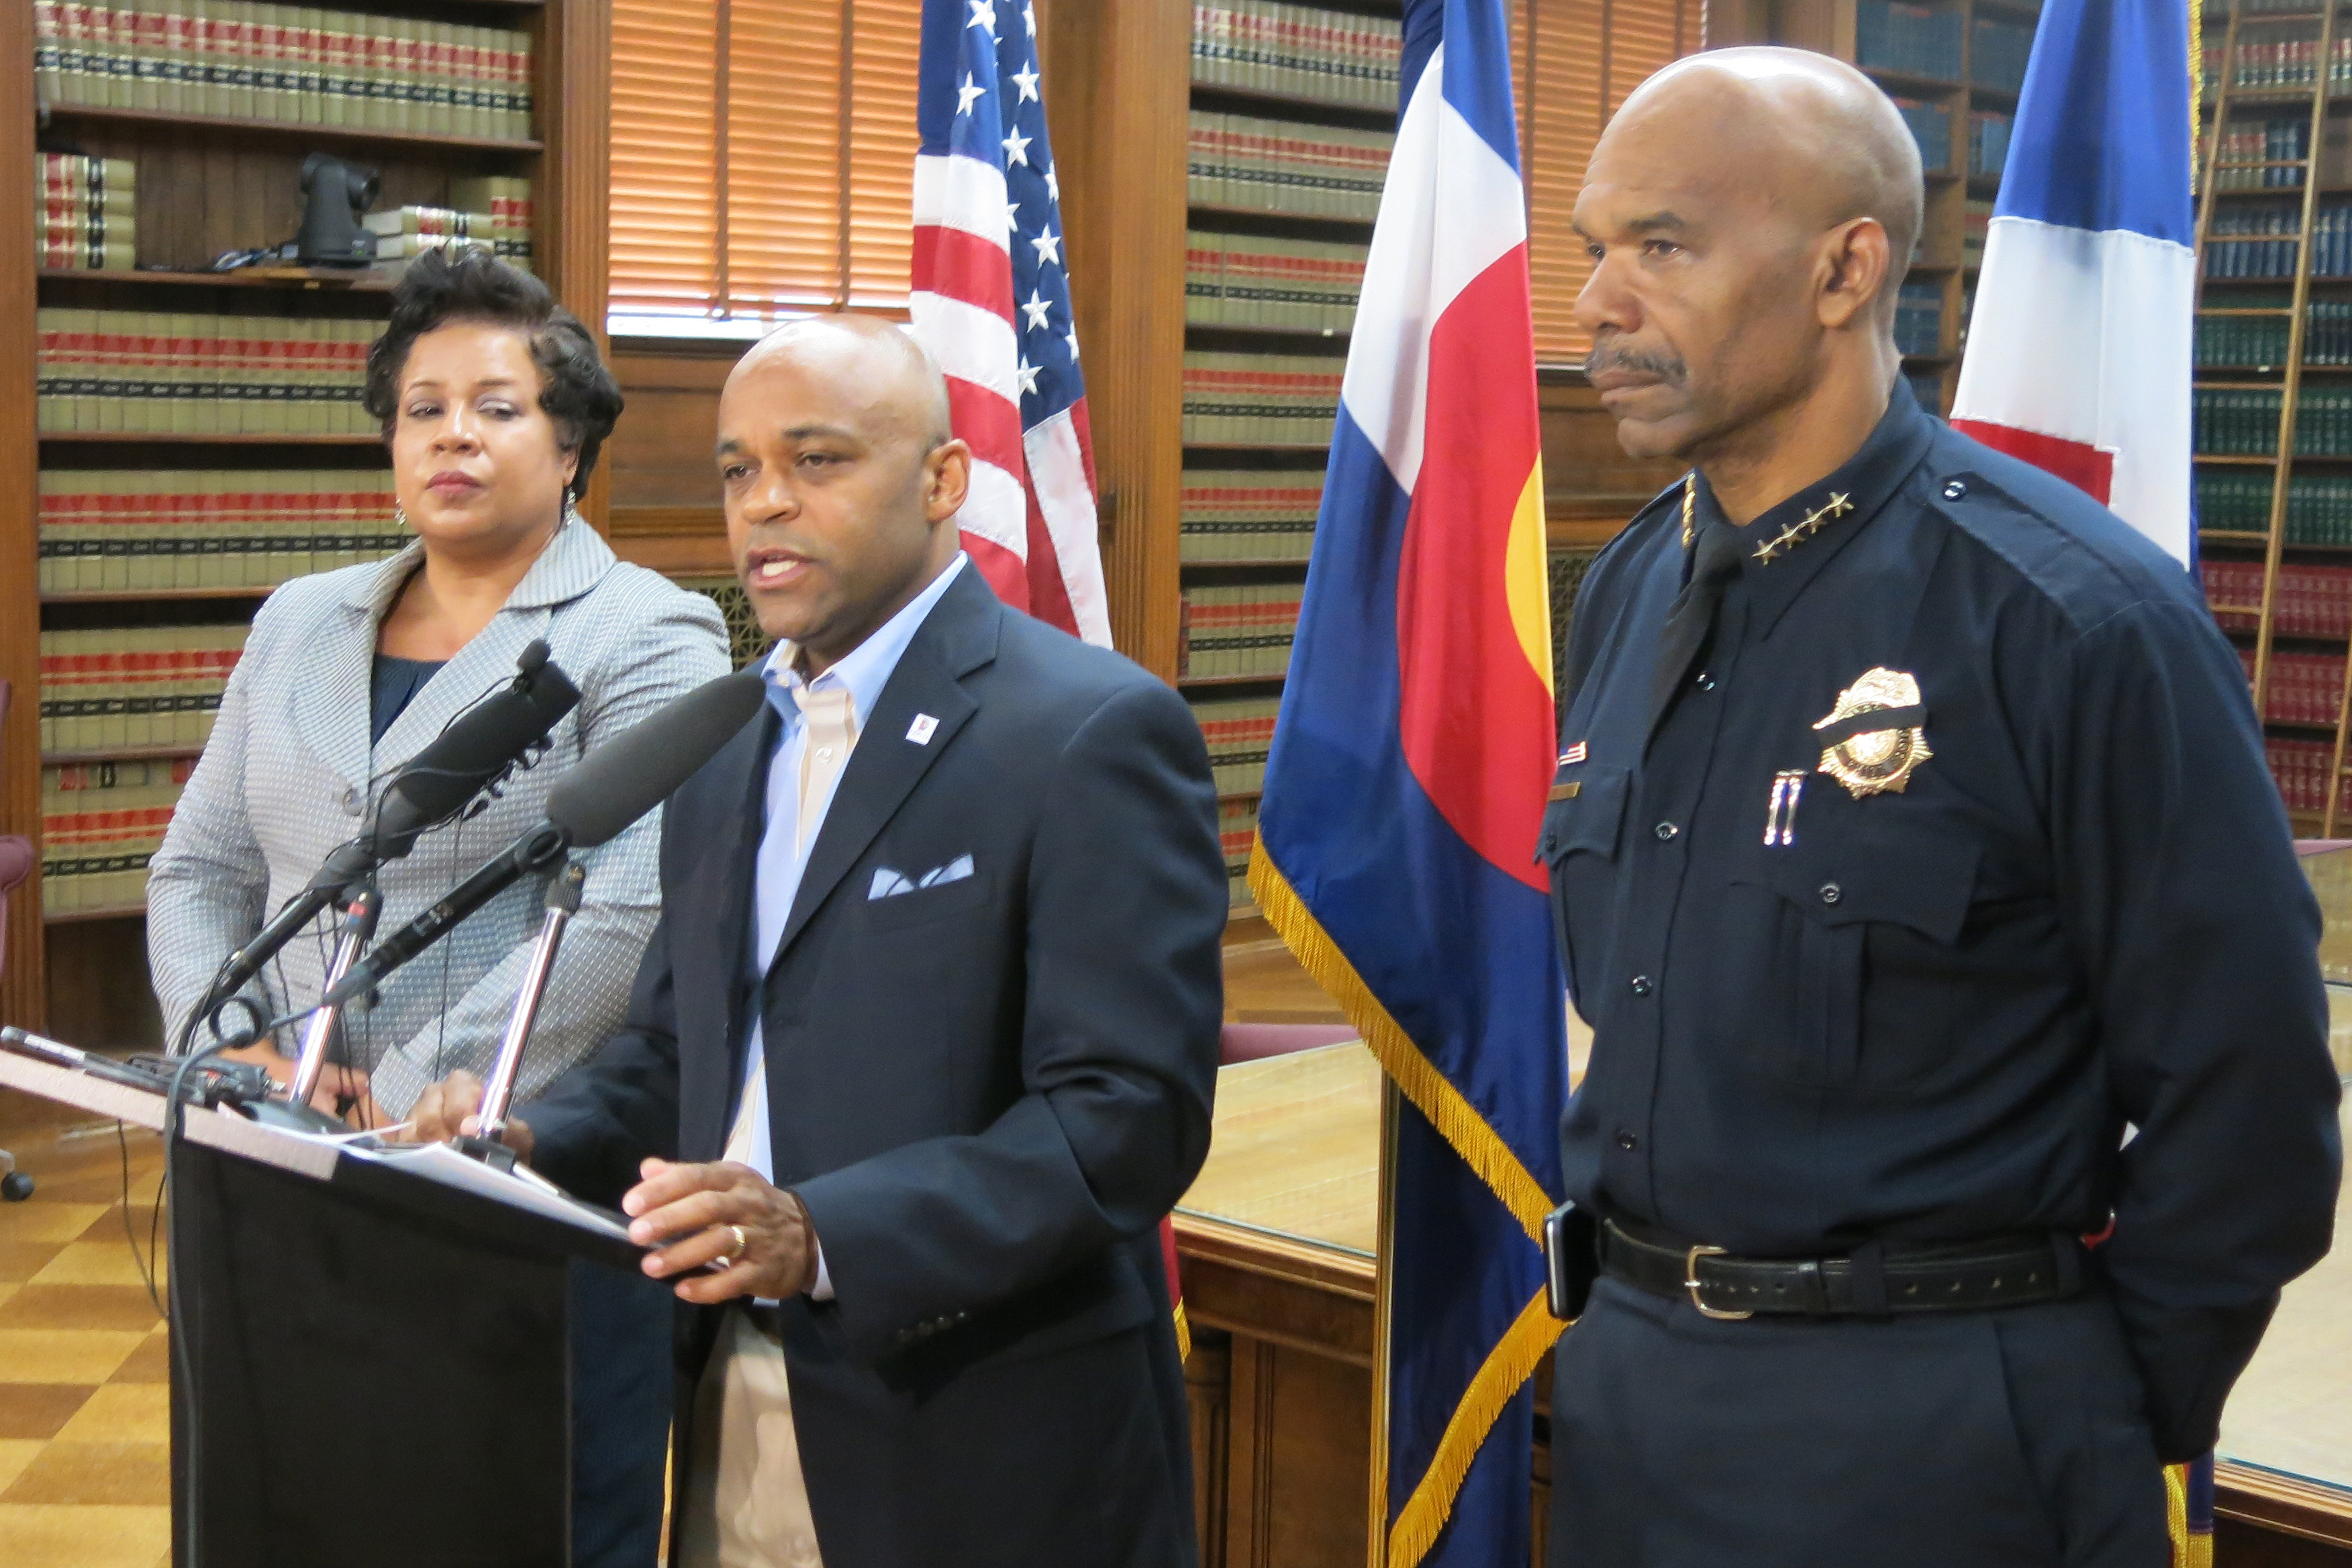 Photo: Stephanie O'Malley, Michael Hancock and Gordon White Talk To Reporters After Dallas Shooting